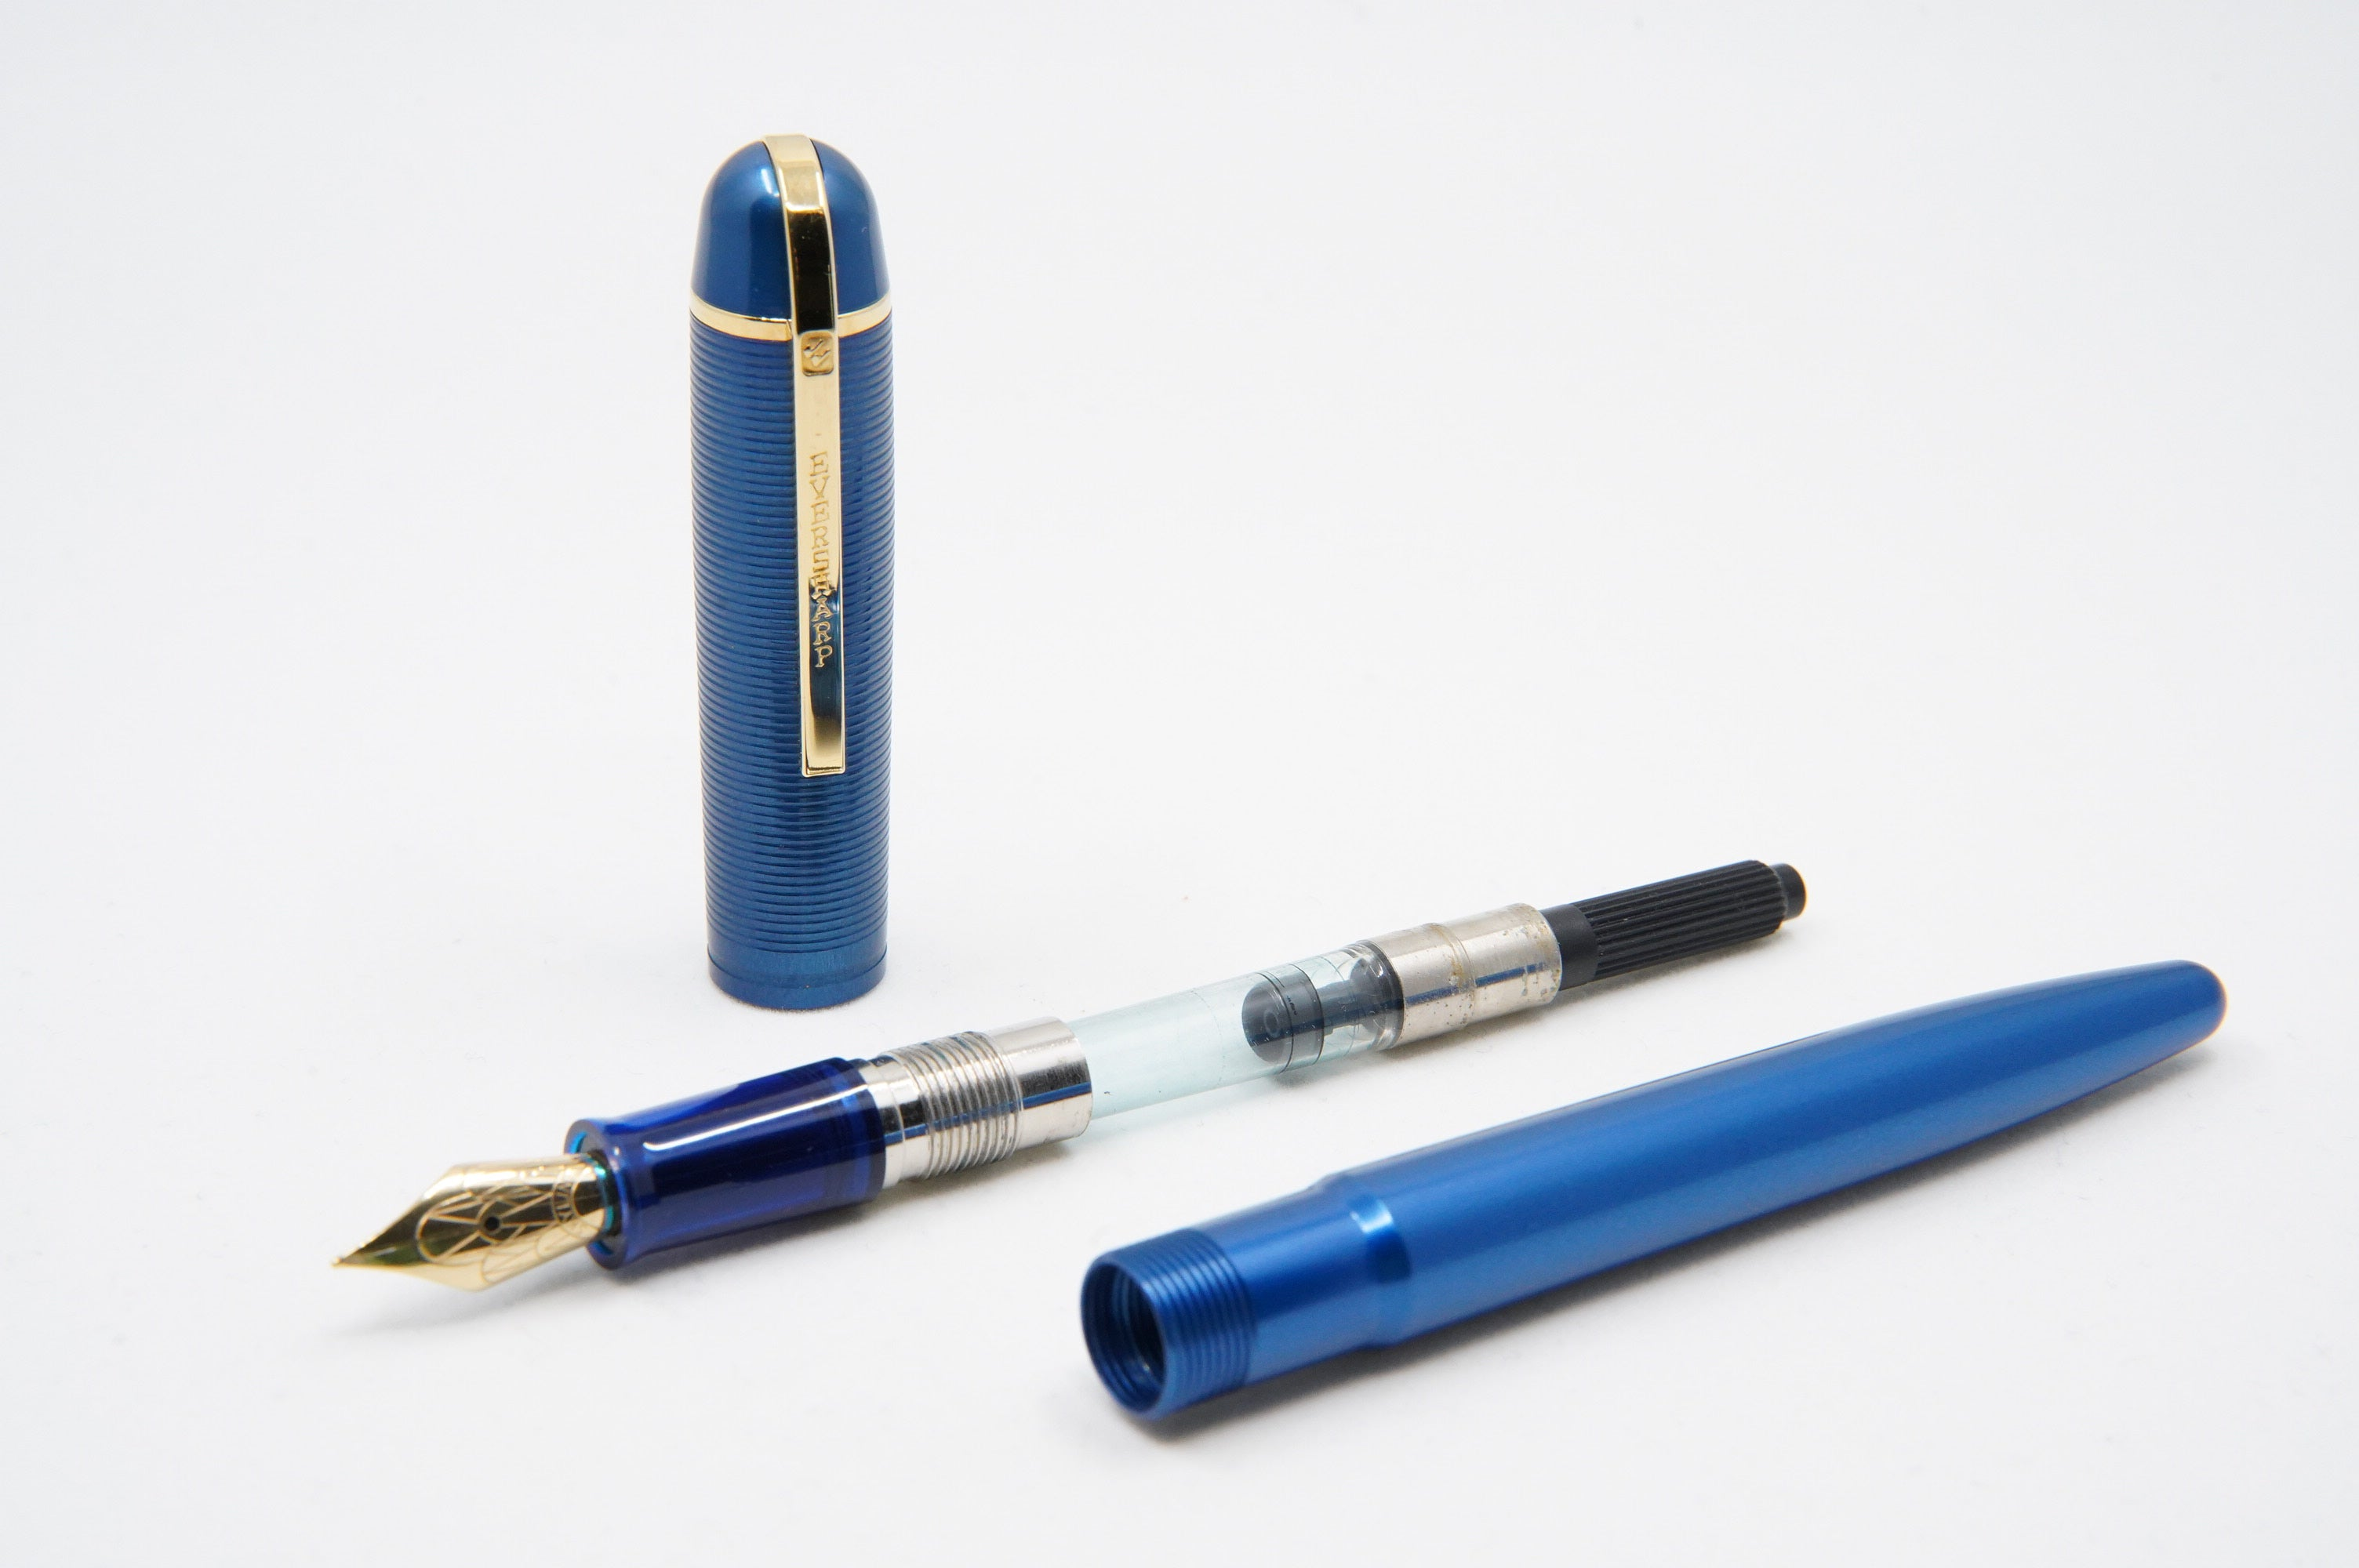 Wahl Eversharp Skyline FP Aluminium blue  - The iconic SKYLINE created by Henry Dreyfus in 1939